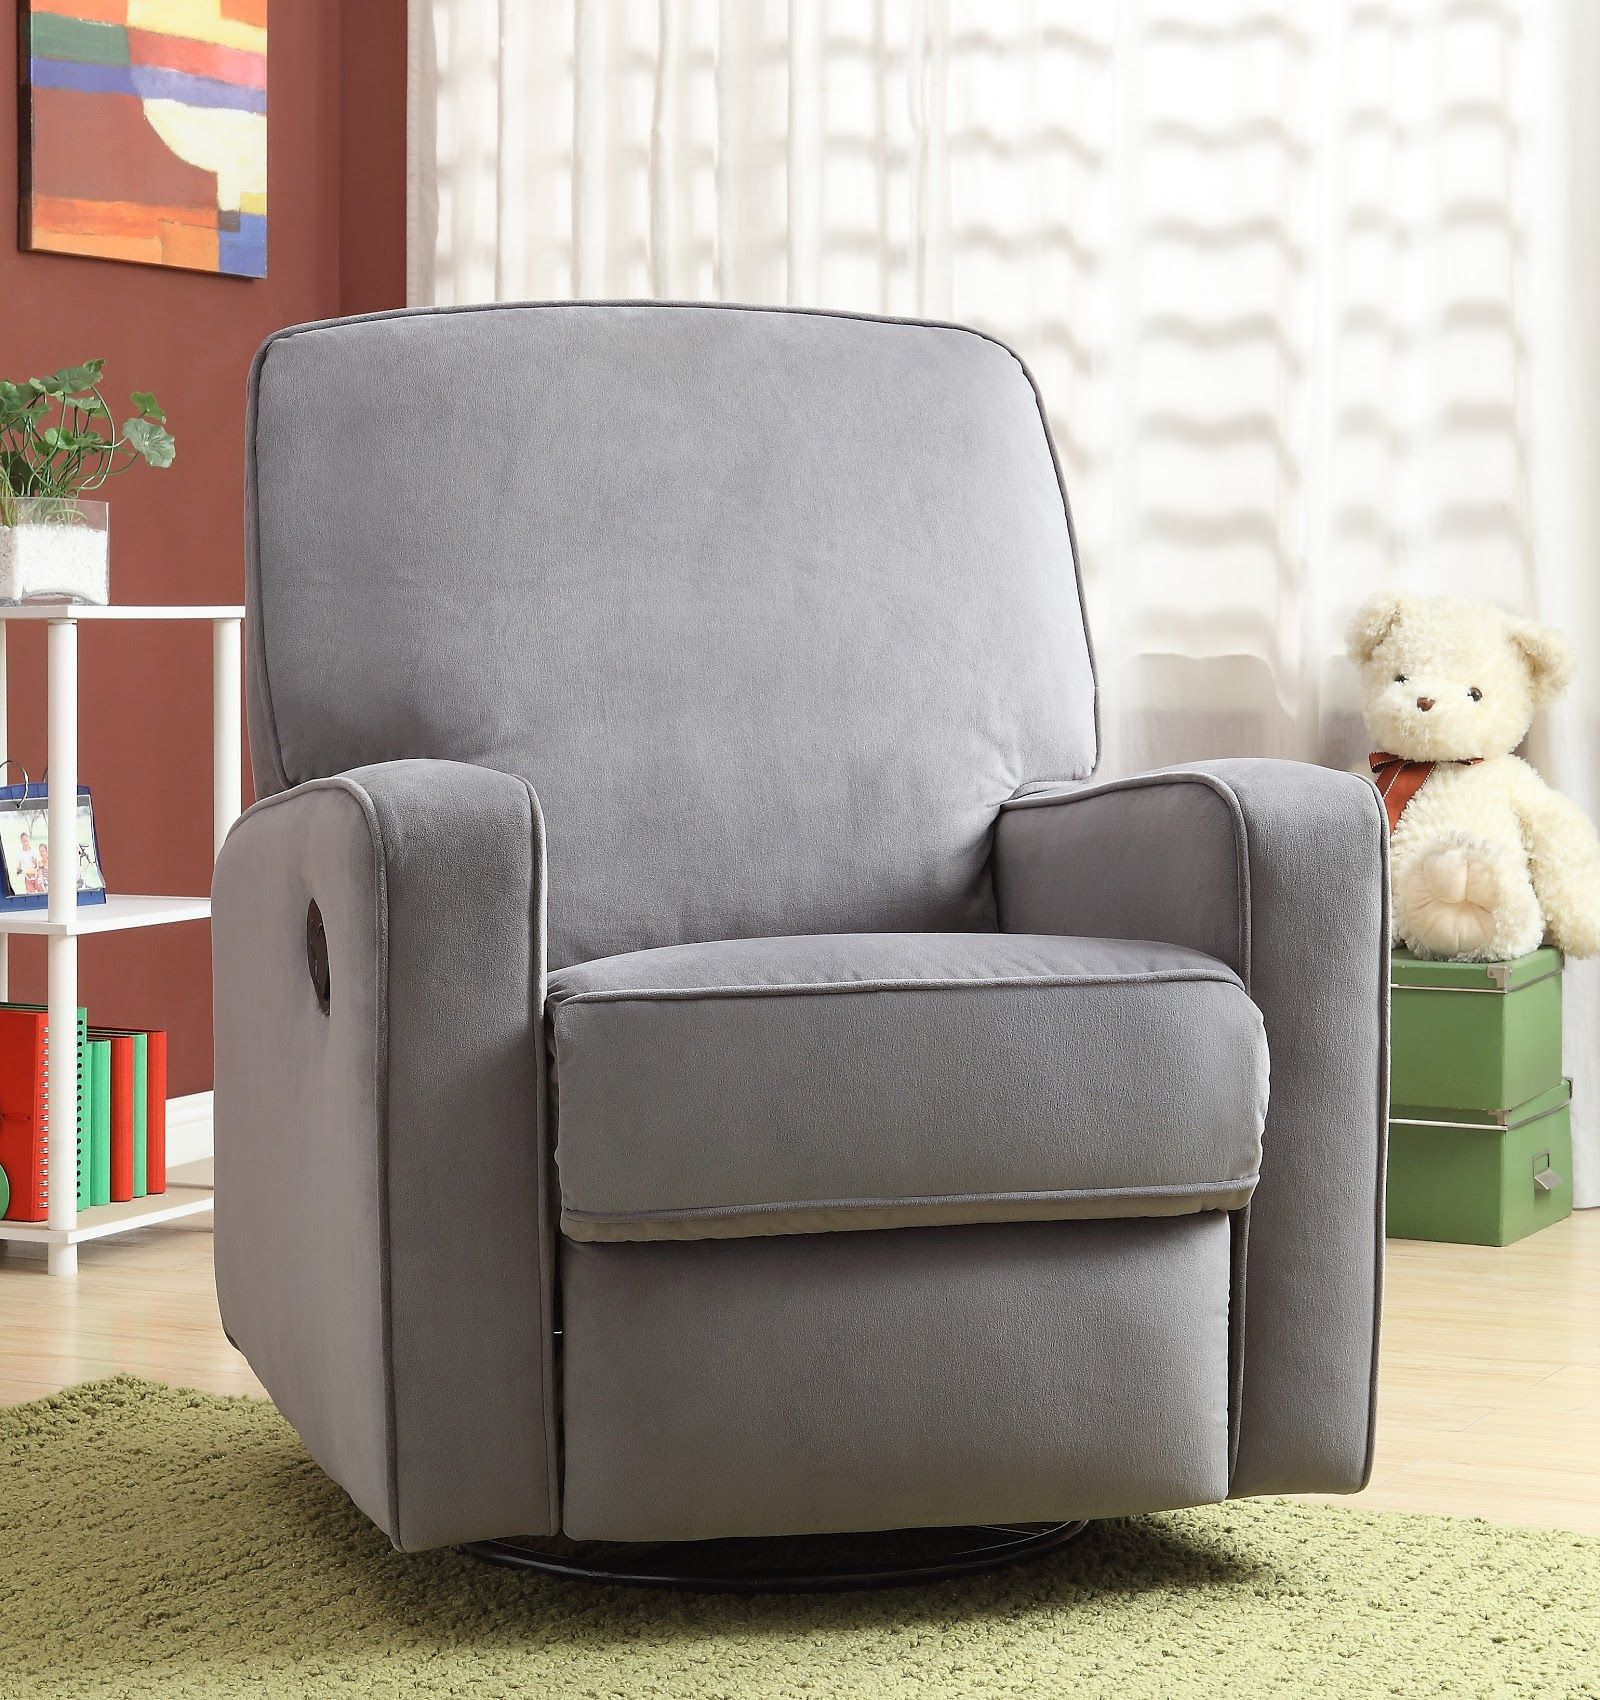 50+ Swivel Glider Rocker Recliner Chair U0026 Ottoman   Americas Best Furniture  Check More At ...